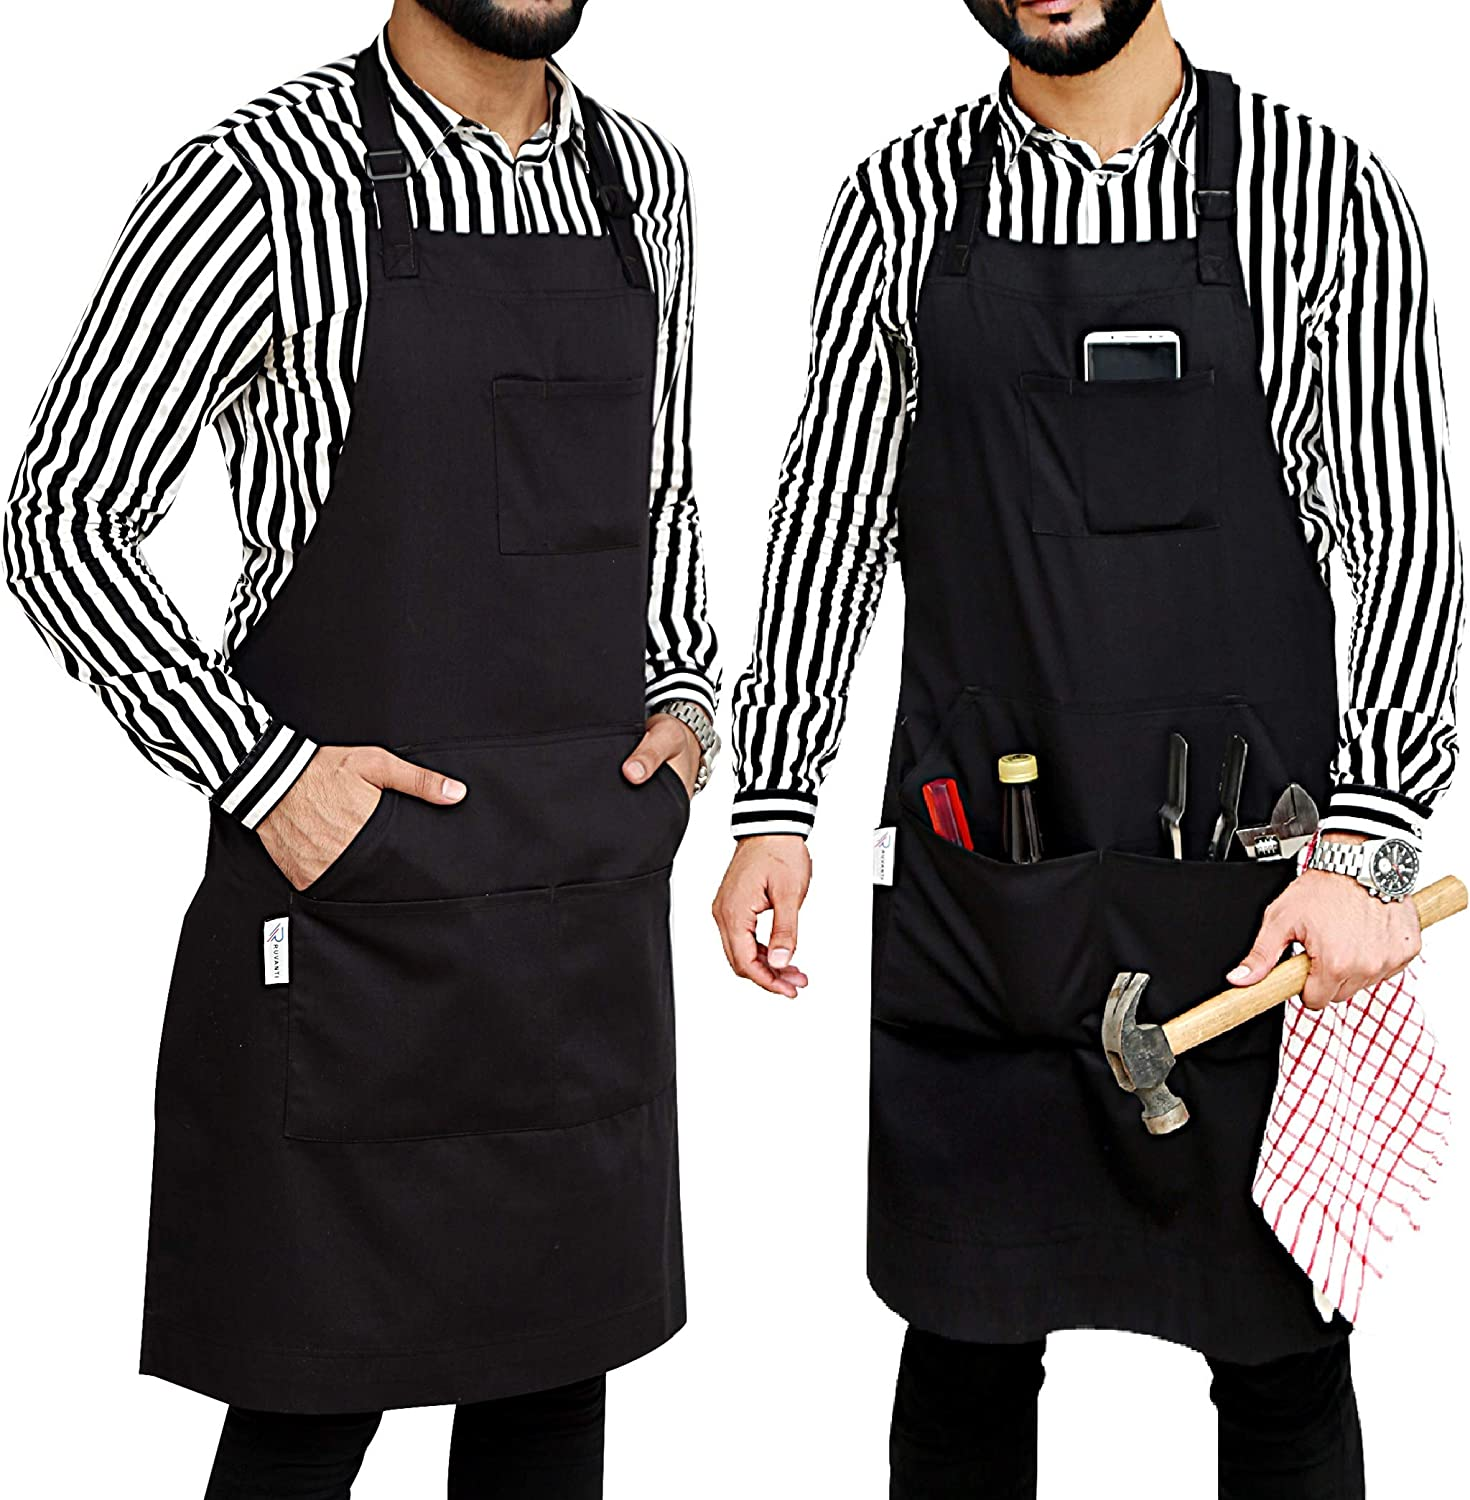 "Ruvanti Professional Grade Extra Durable Black Aprons for Men/Women Size M to XXL(Large 34""x28"") Cotton Enrich, Adjustable Neck Strap, Tool Pockets,Chef Apron/Barber Apron/Canvas Apron with 5 Pockets."